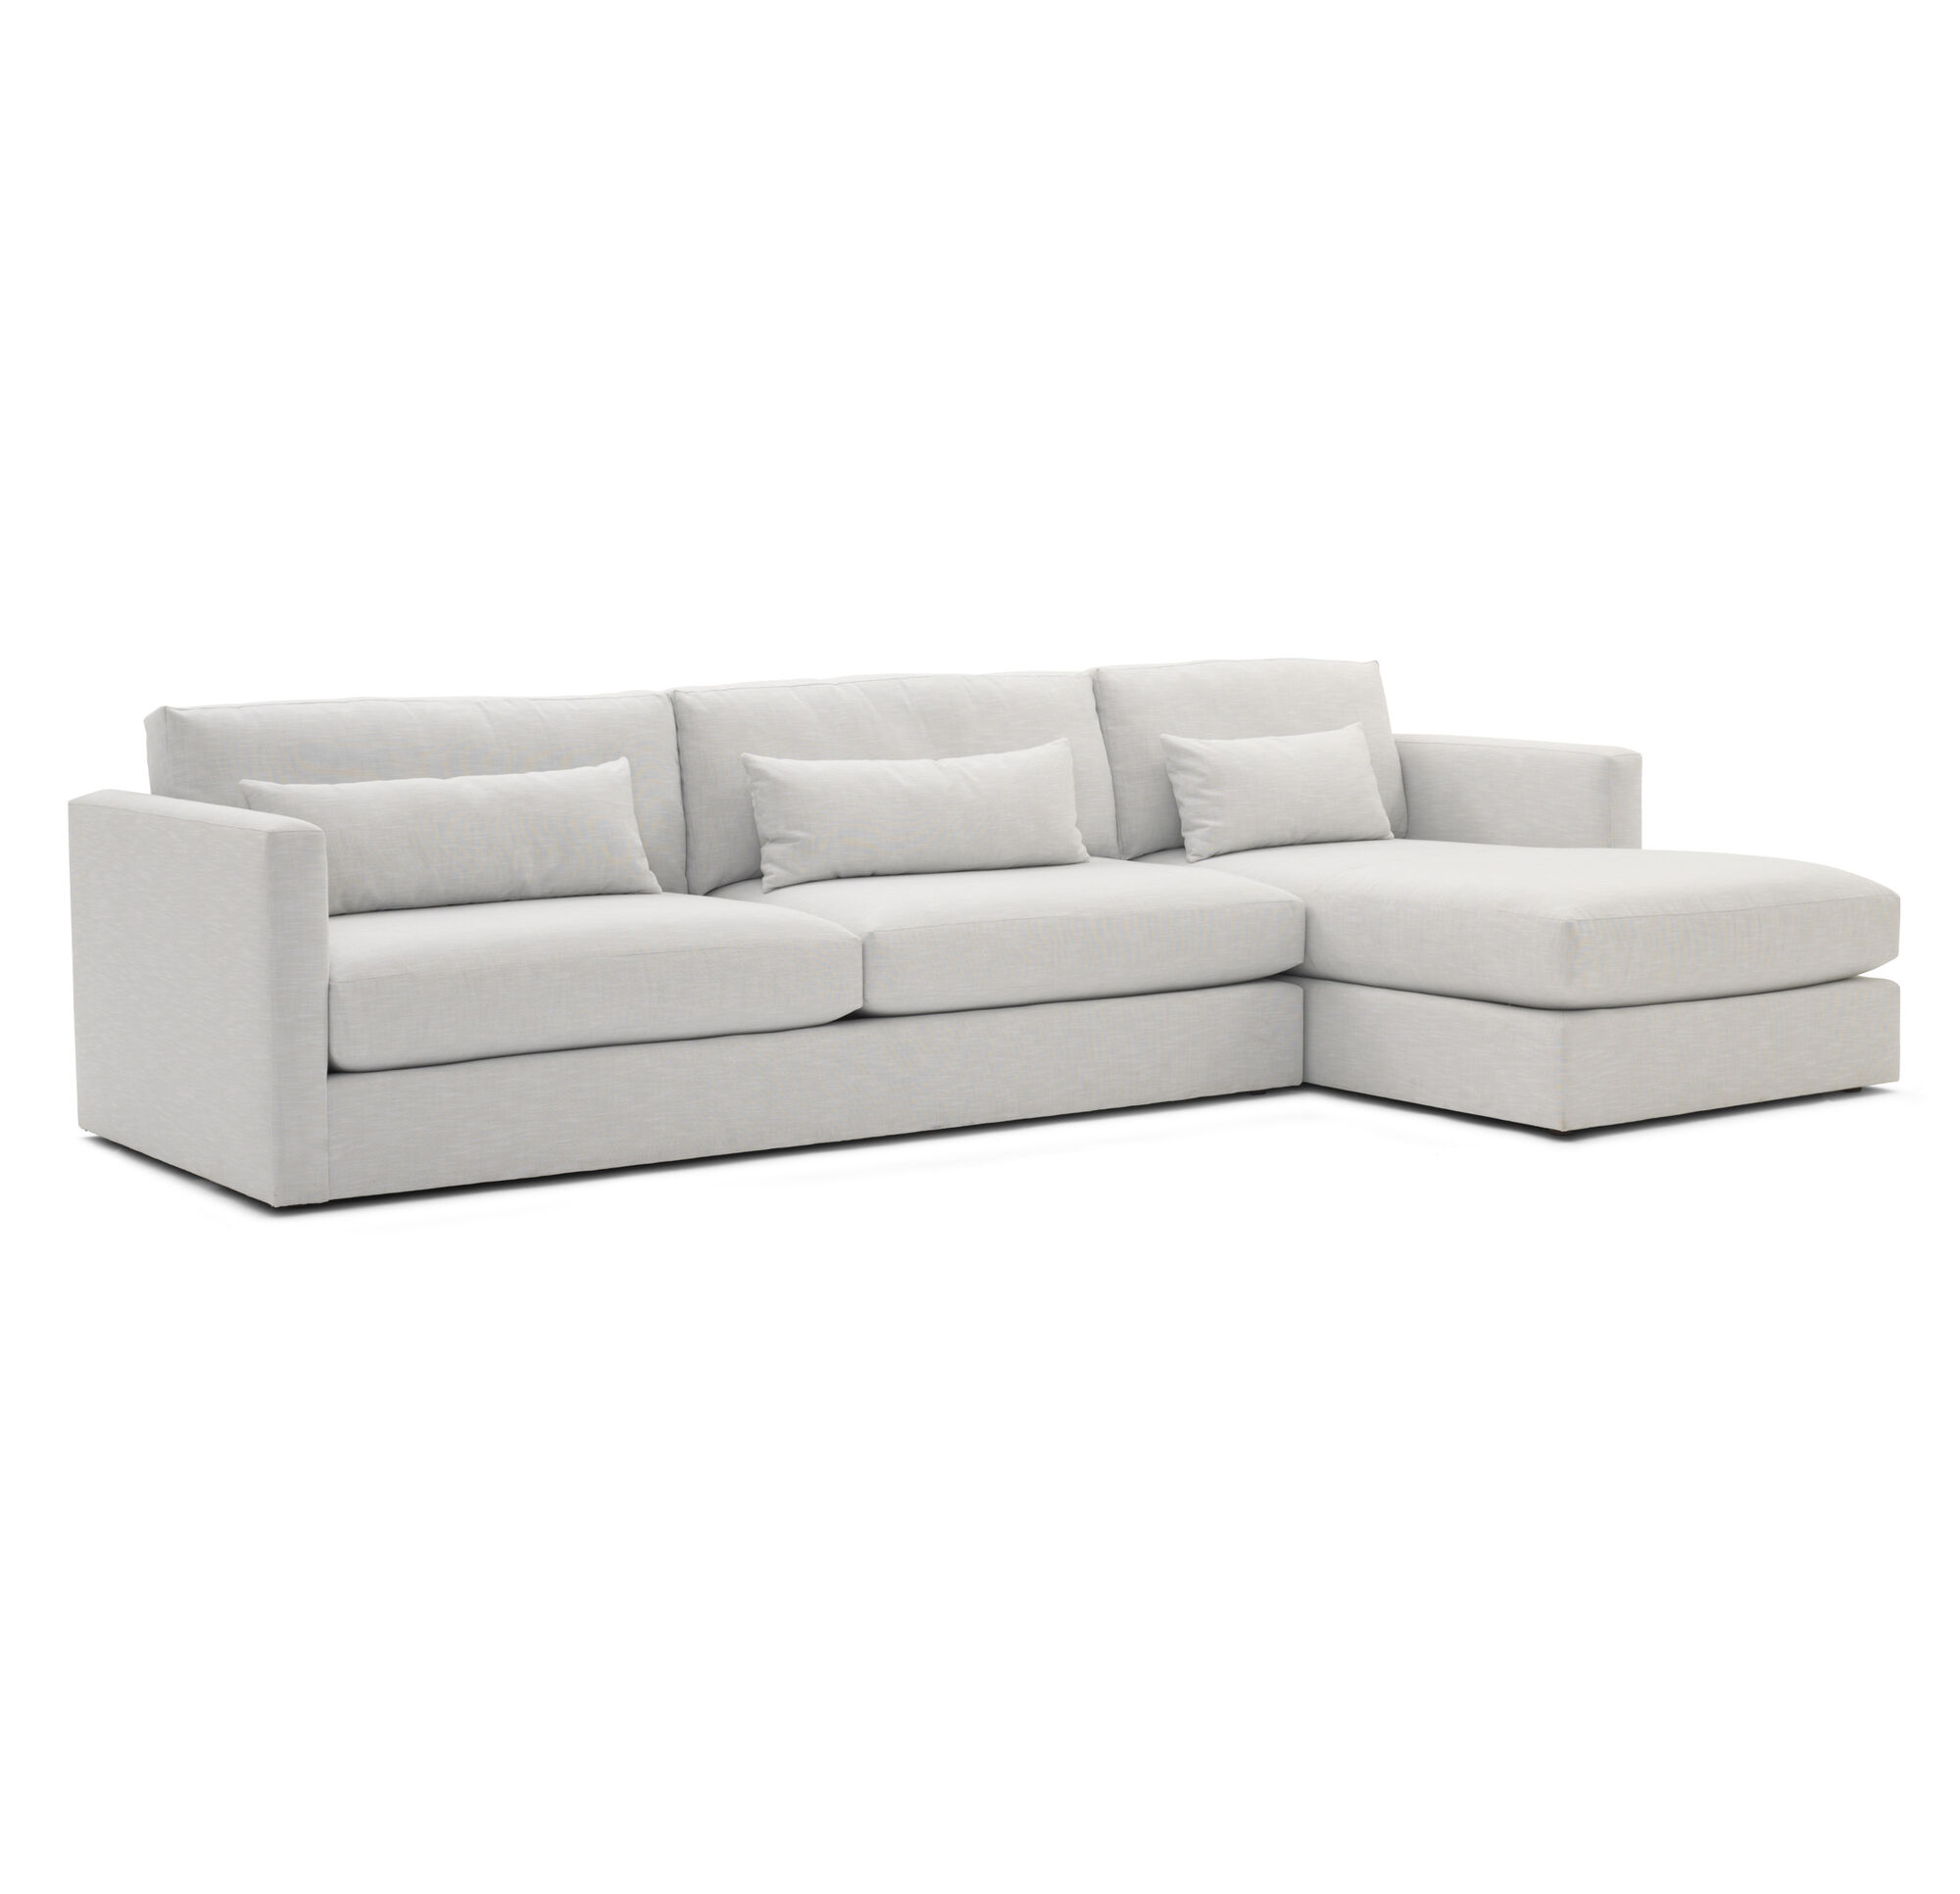 HAYWOOD RIGHT CHAISE SECTIONAL